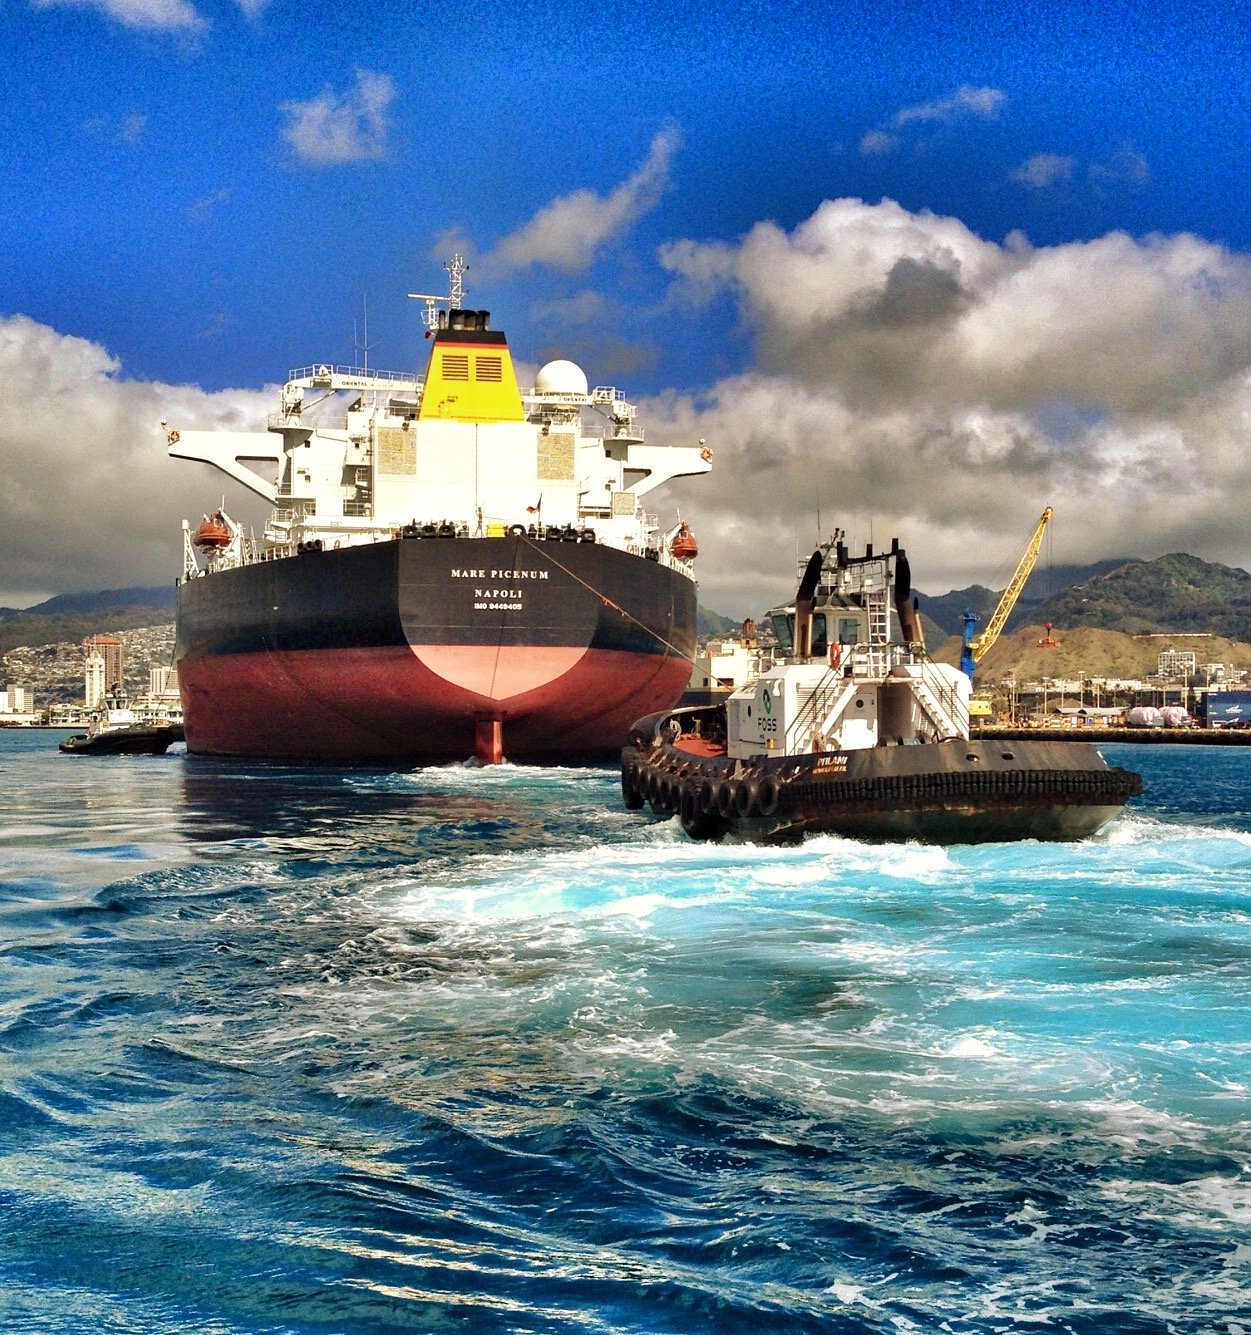 RIDE ONBOARD A FOSS TUG AND GET A CAPTAIN'S VIEW OF HANDLING A SHIP AROUND HONOLULU HARBOR